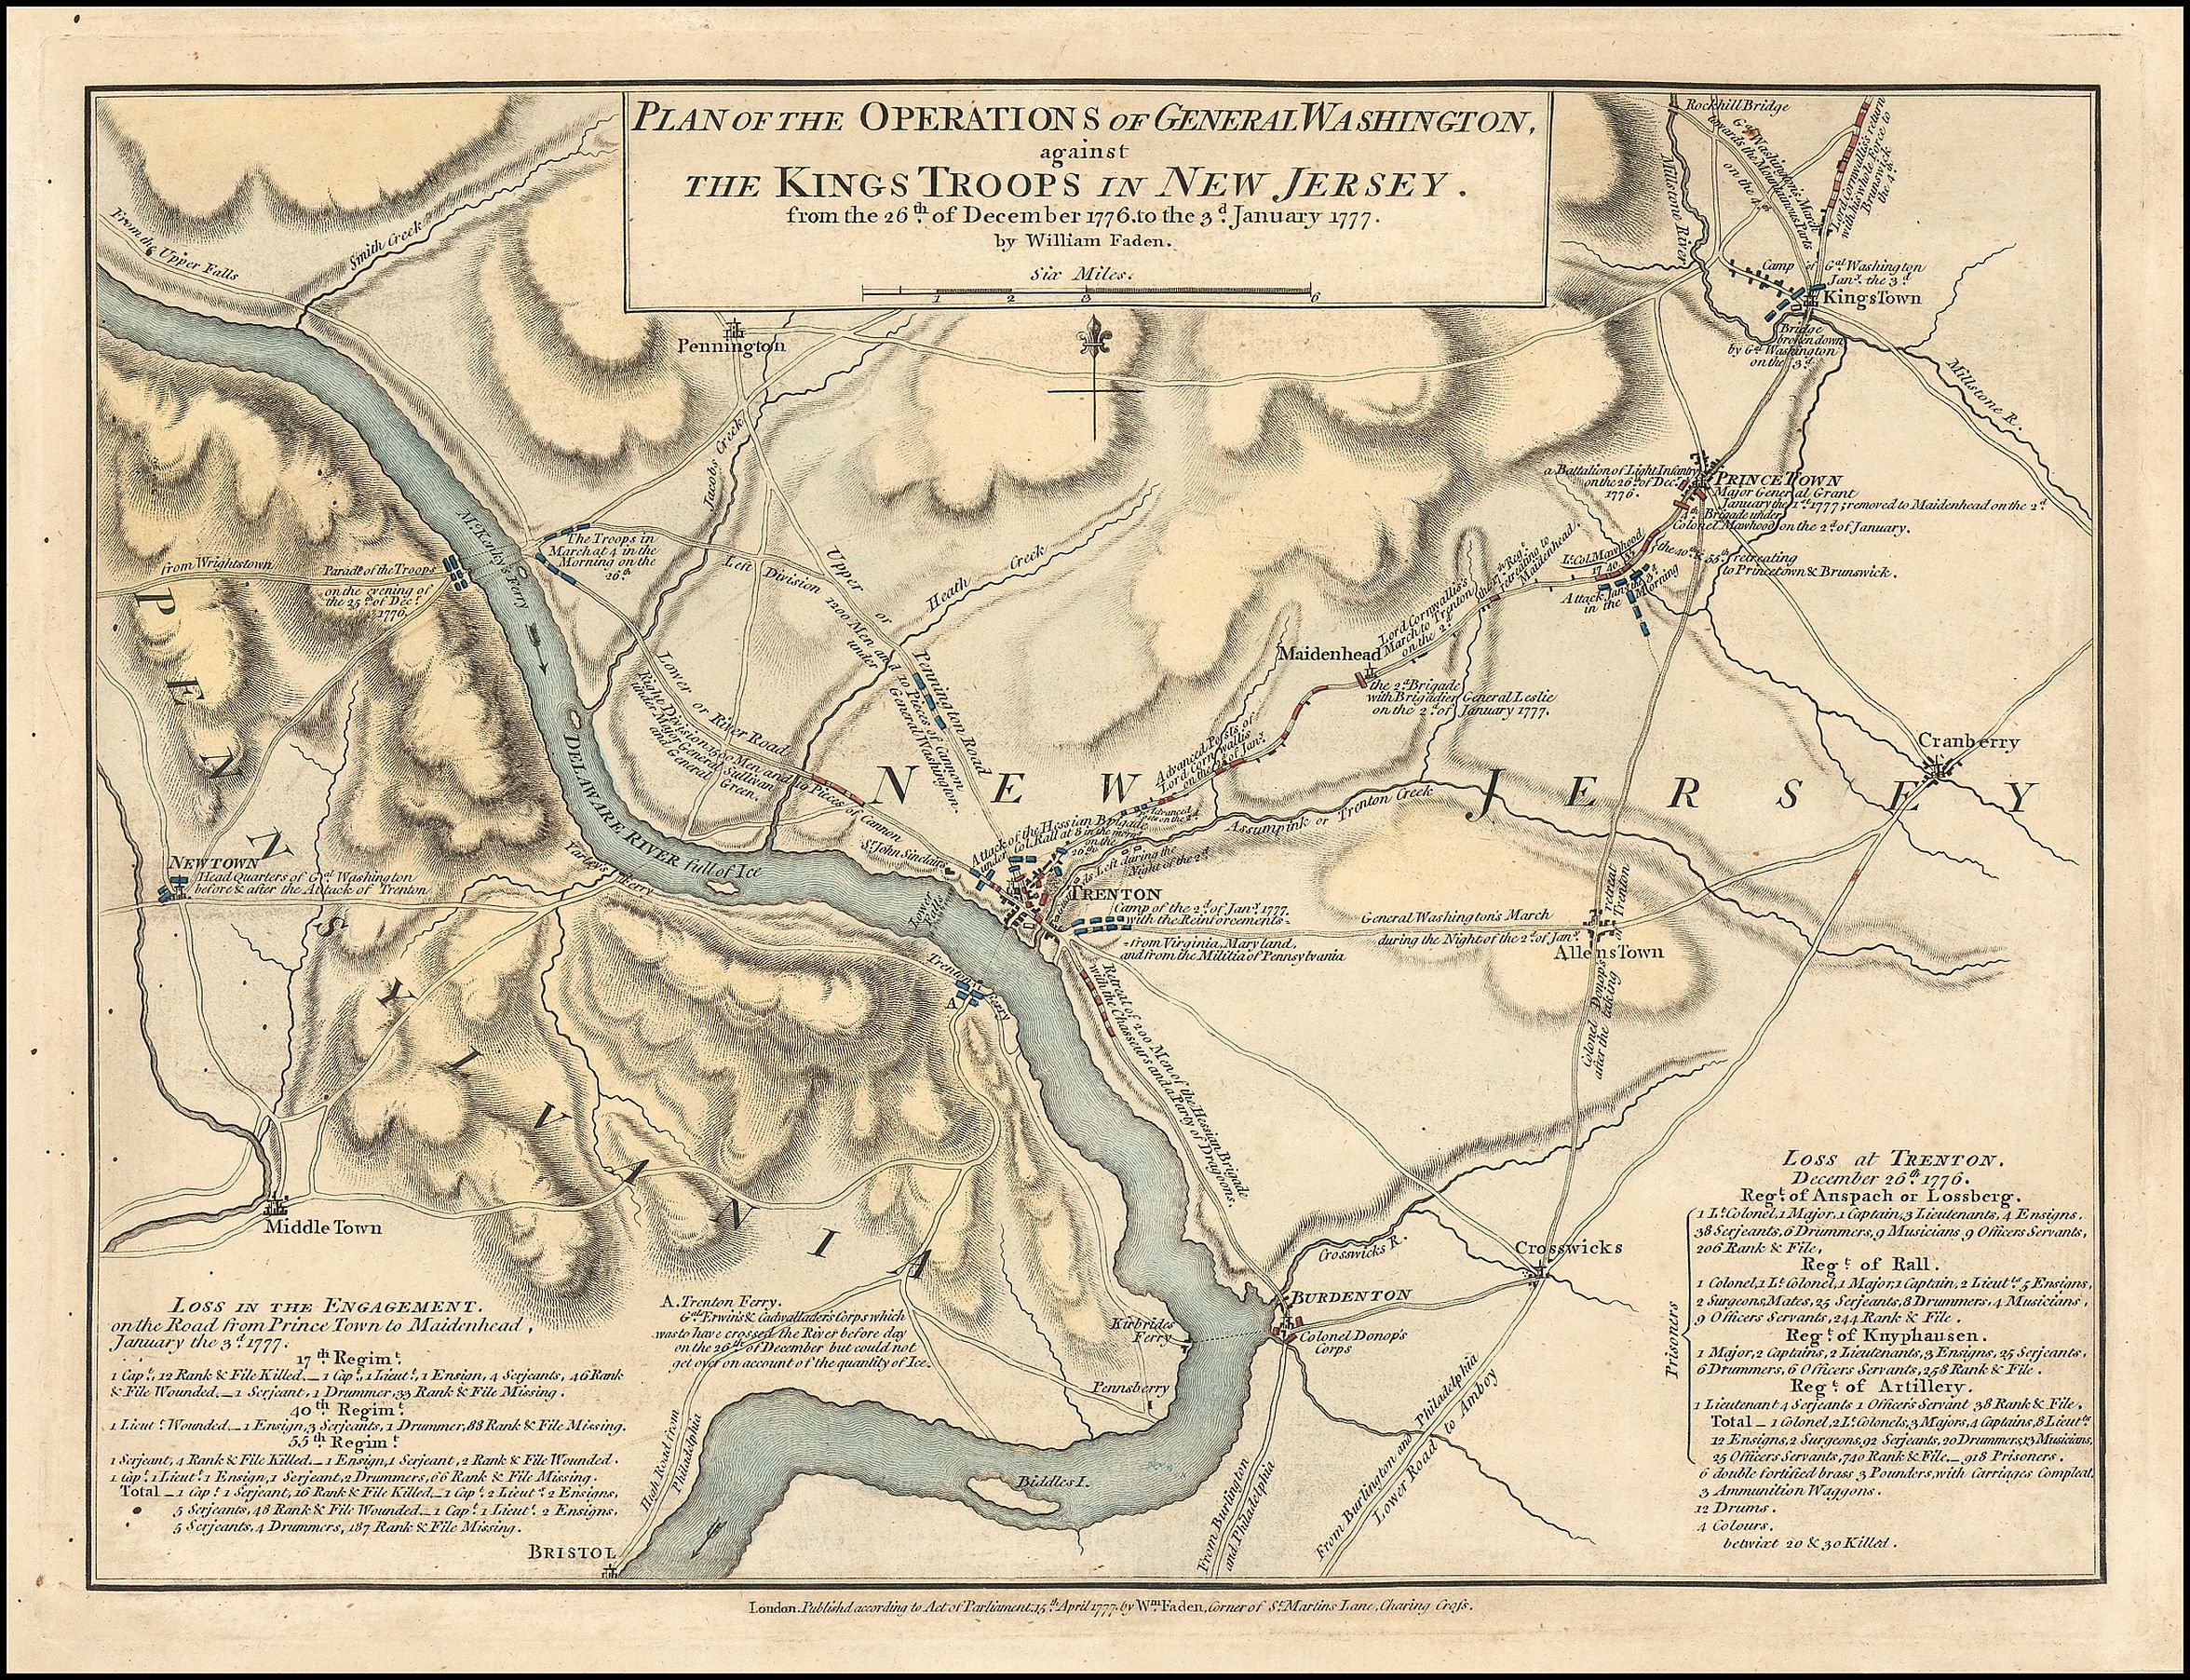 George Washington's crossing of the Delaware River - Wikipedia